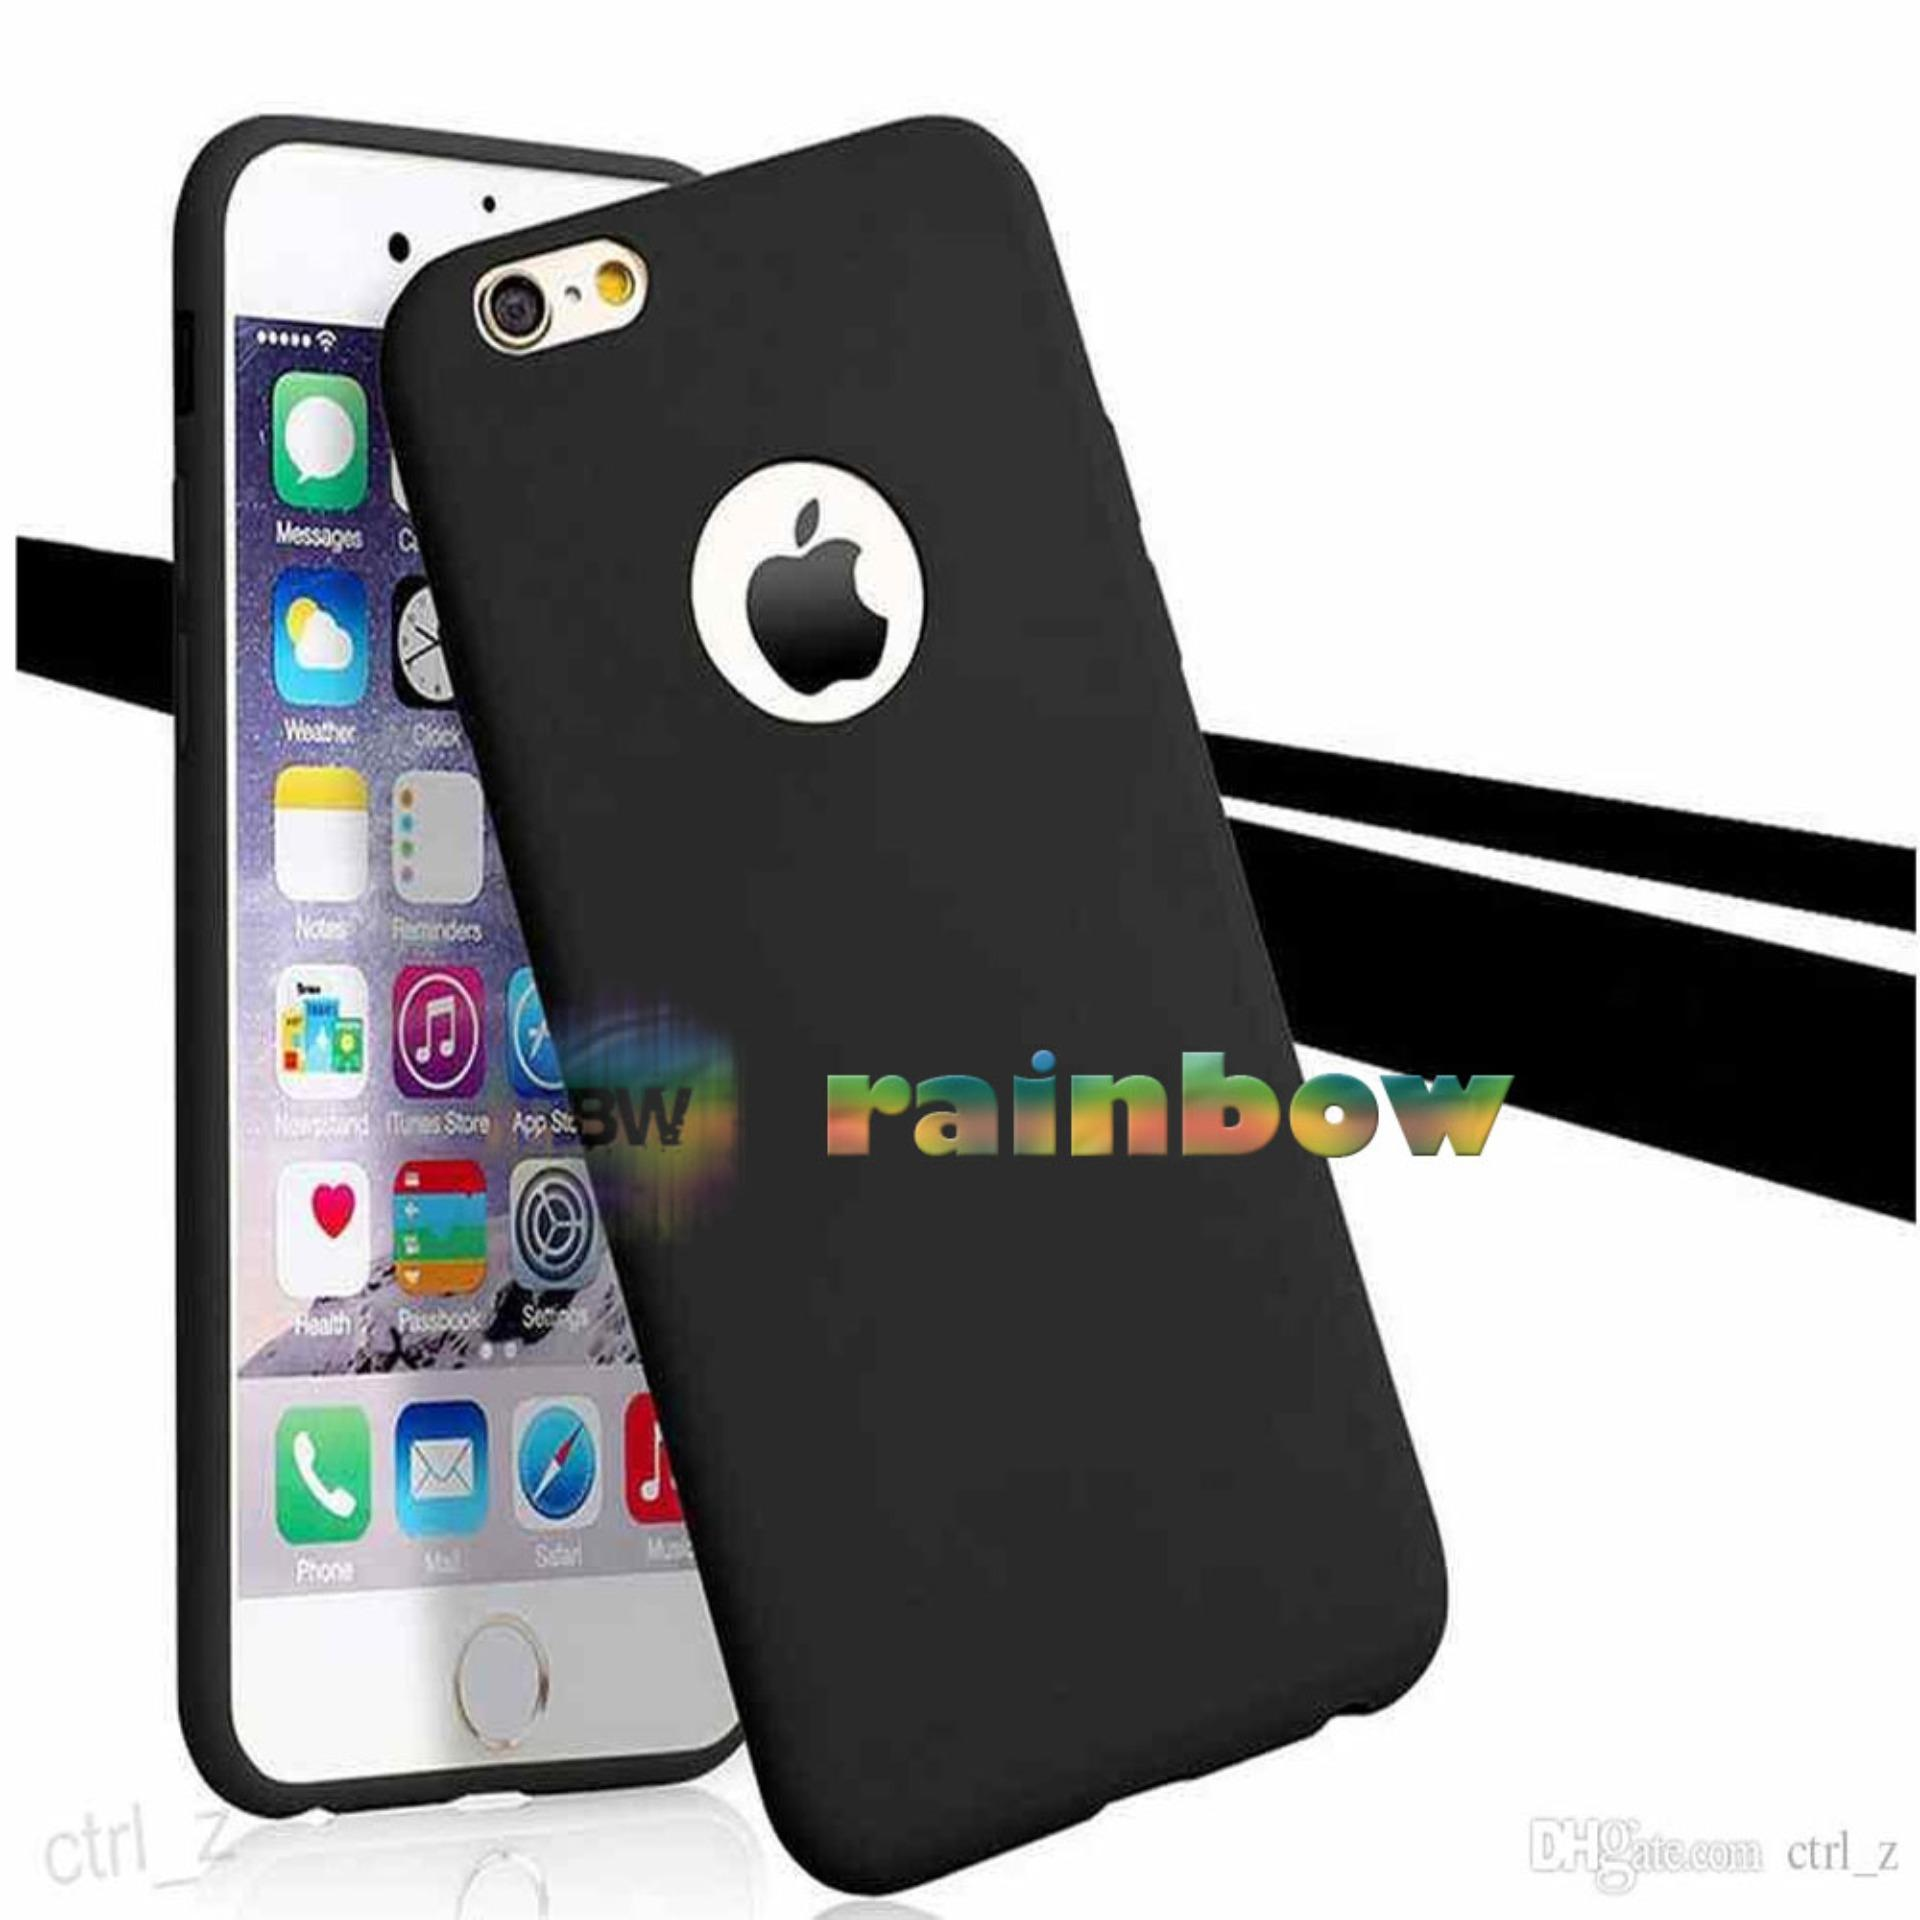 Lize Apple Iphone5 / Iphone 5 / Iphone 5G / Iphone 5S Ori / Softshell / Jelly Case / Soft Case / Soft Back Case / Silicone / Silicon / Silikon / Case Iphone / Case HP / Casing Handphone Iphone 5 - Hitam